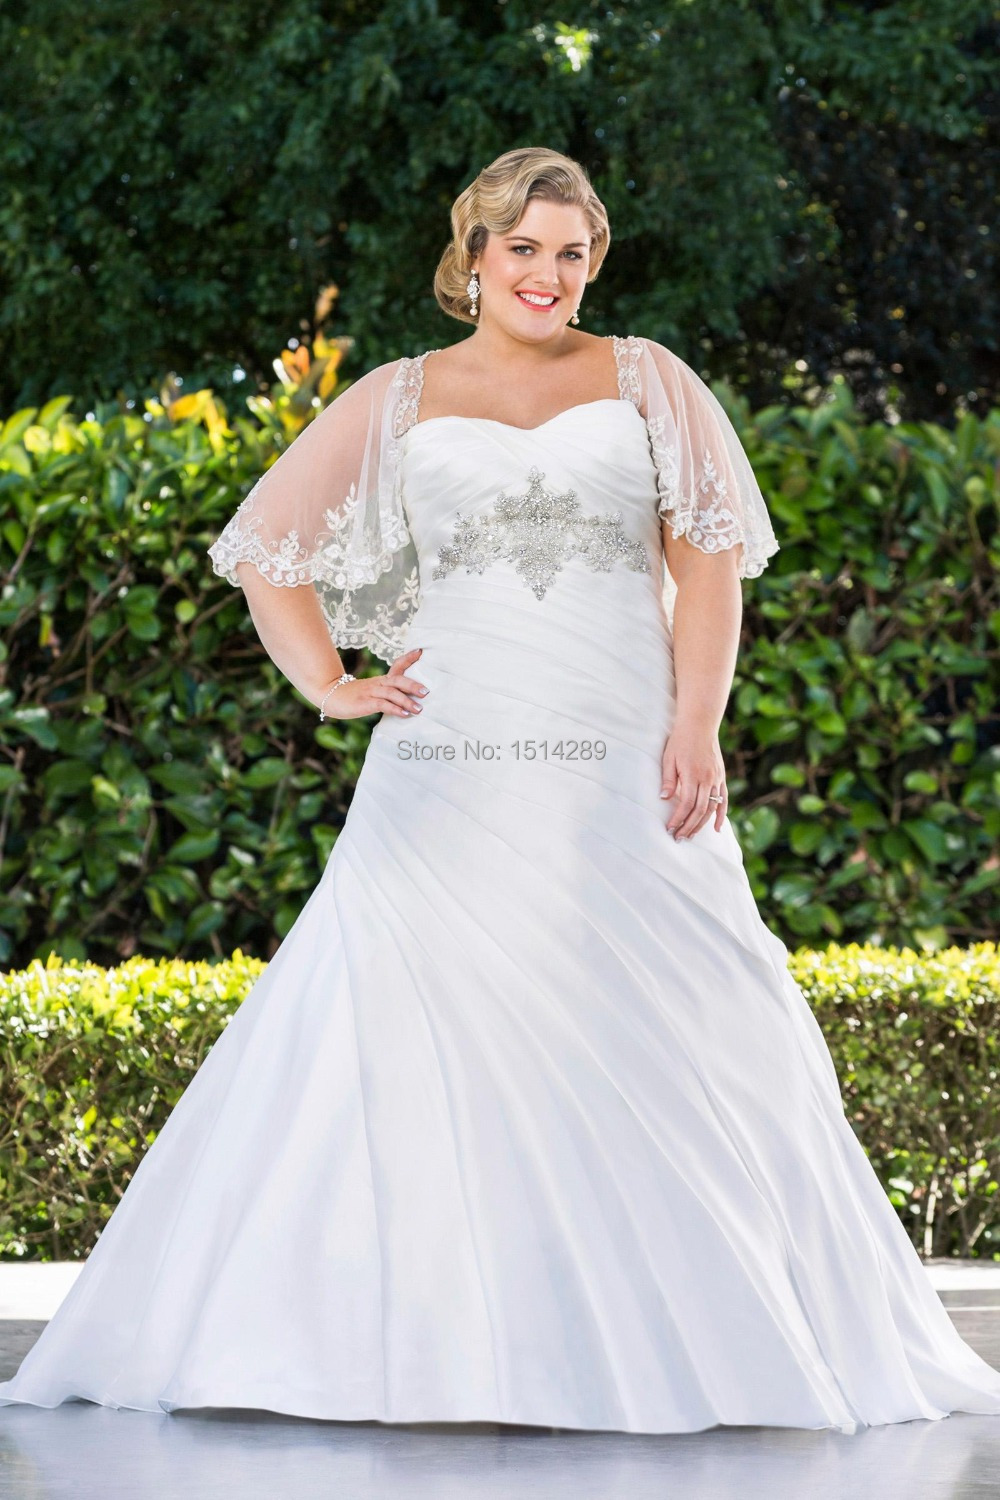 new winter style plus size wedding dresses a line 2016